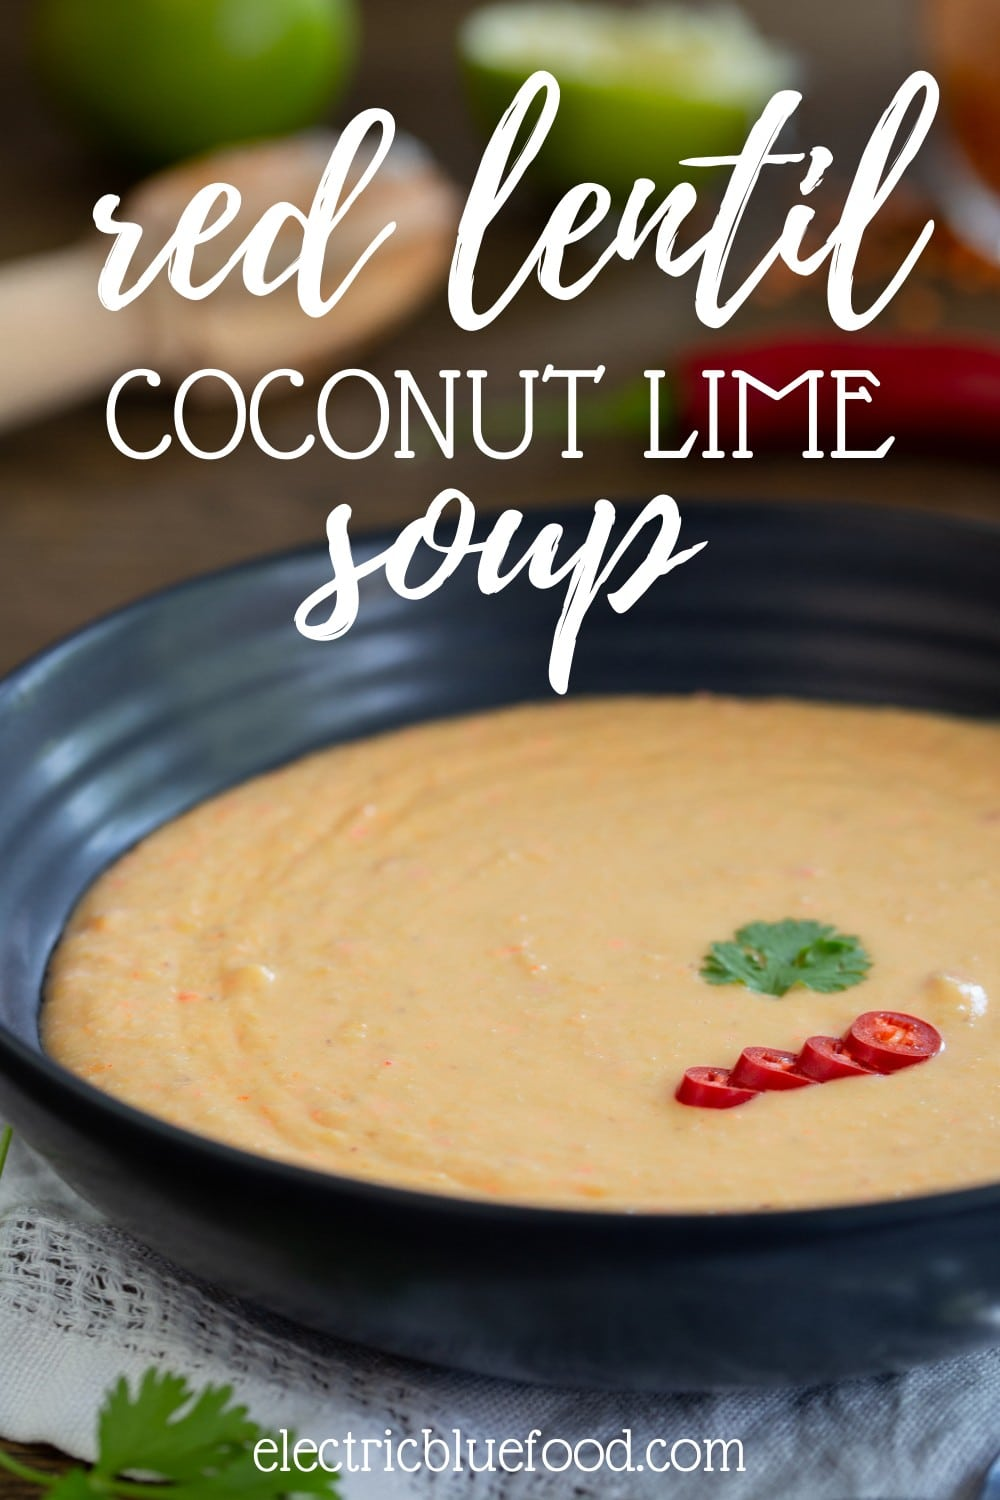 Vegan coconut red lentil soup with lime and chili. Ready in 30 minutes, this soup is entirely plant-based. A spicy blended soup inspired by the flavours of East Asian cuisine.